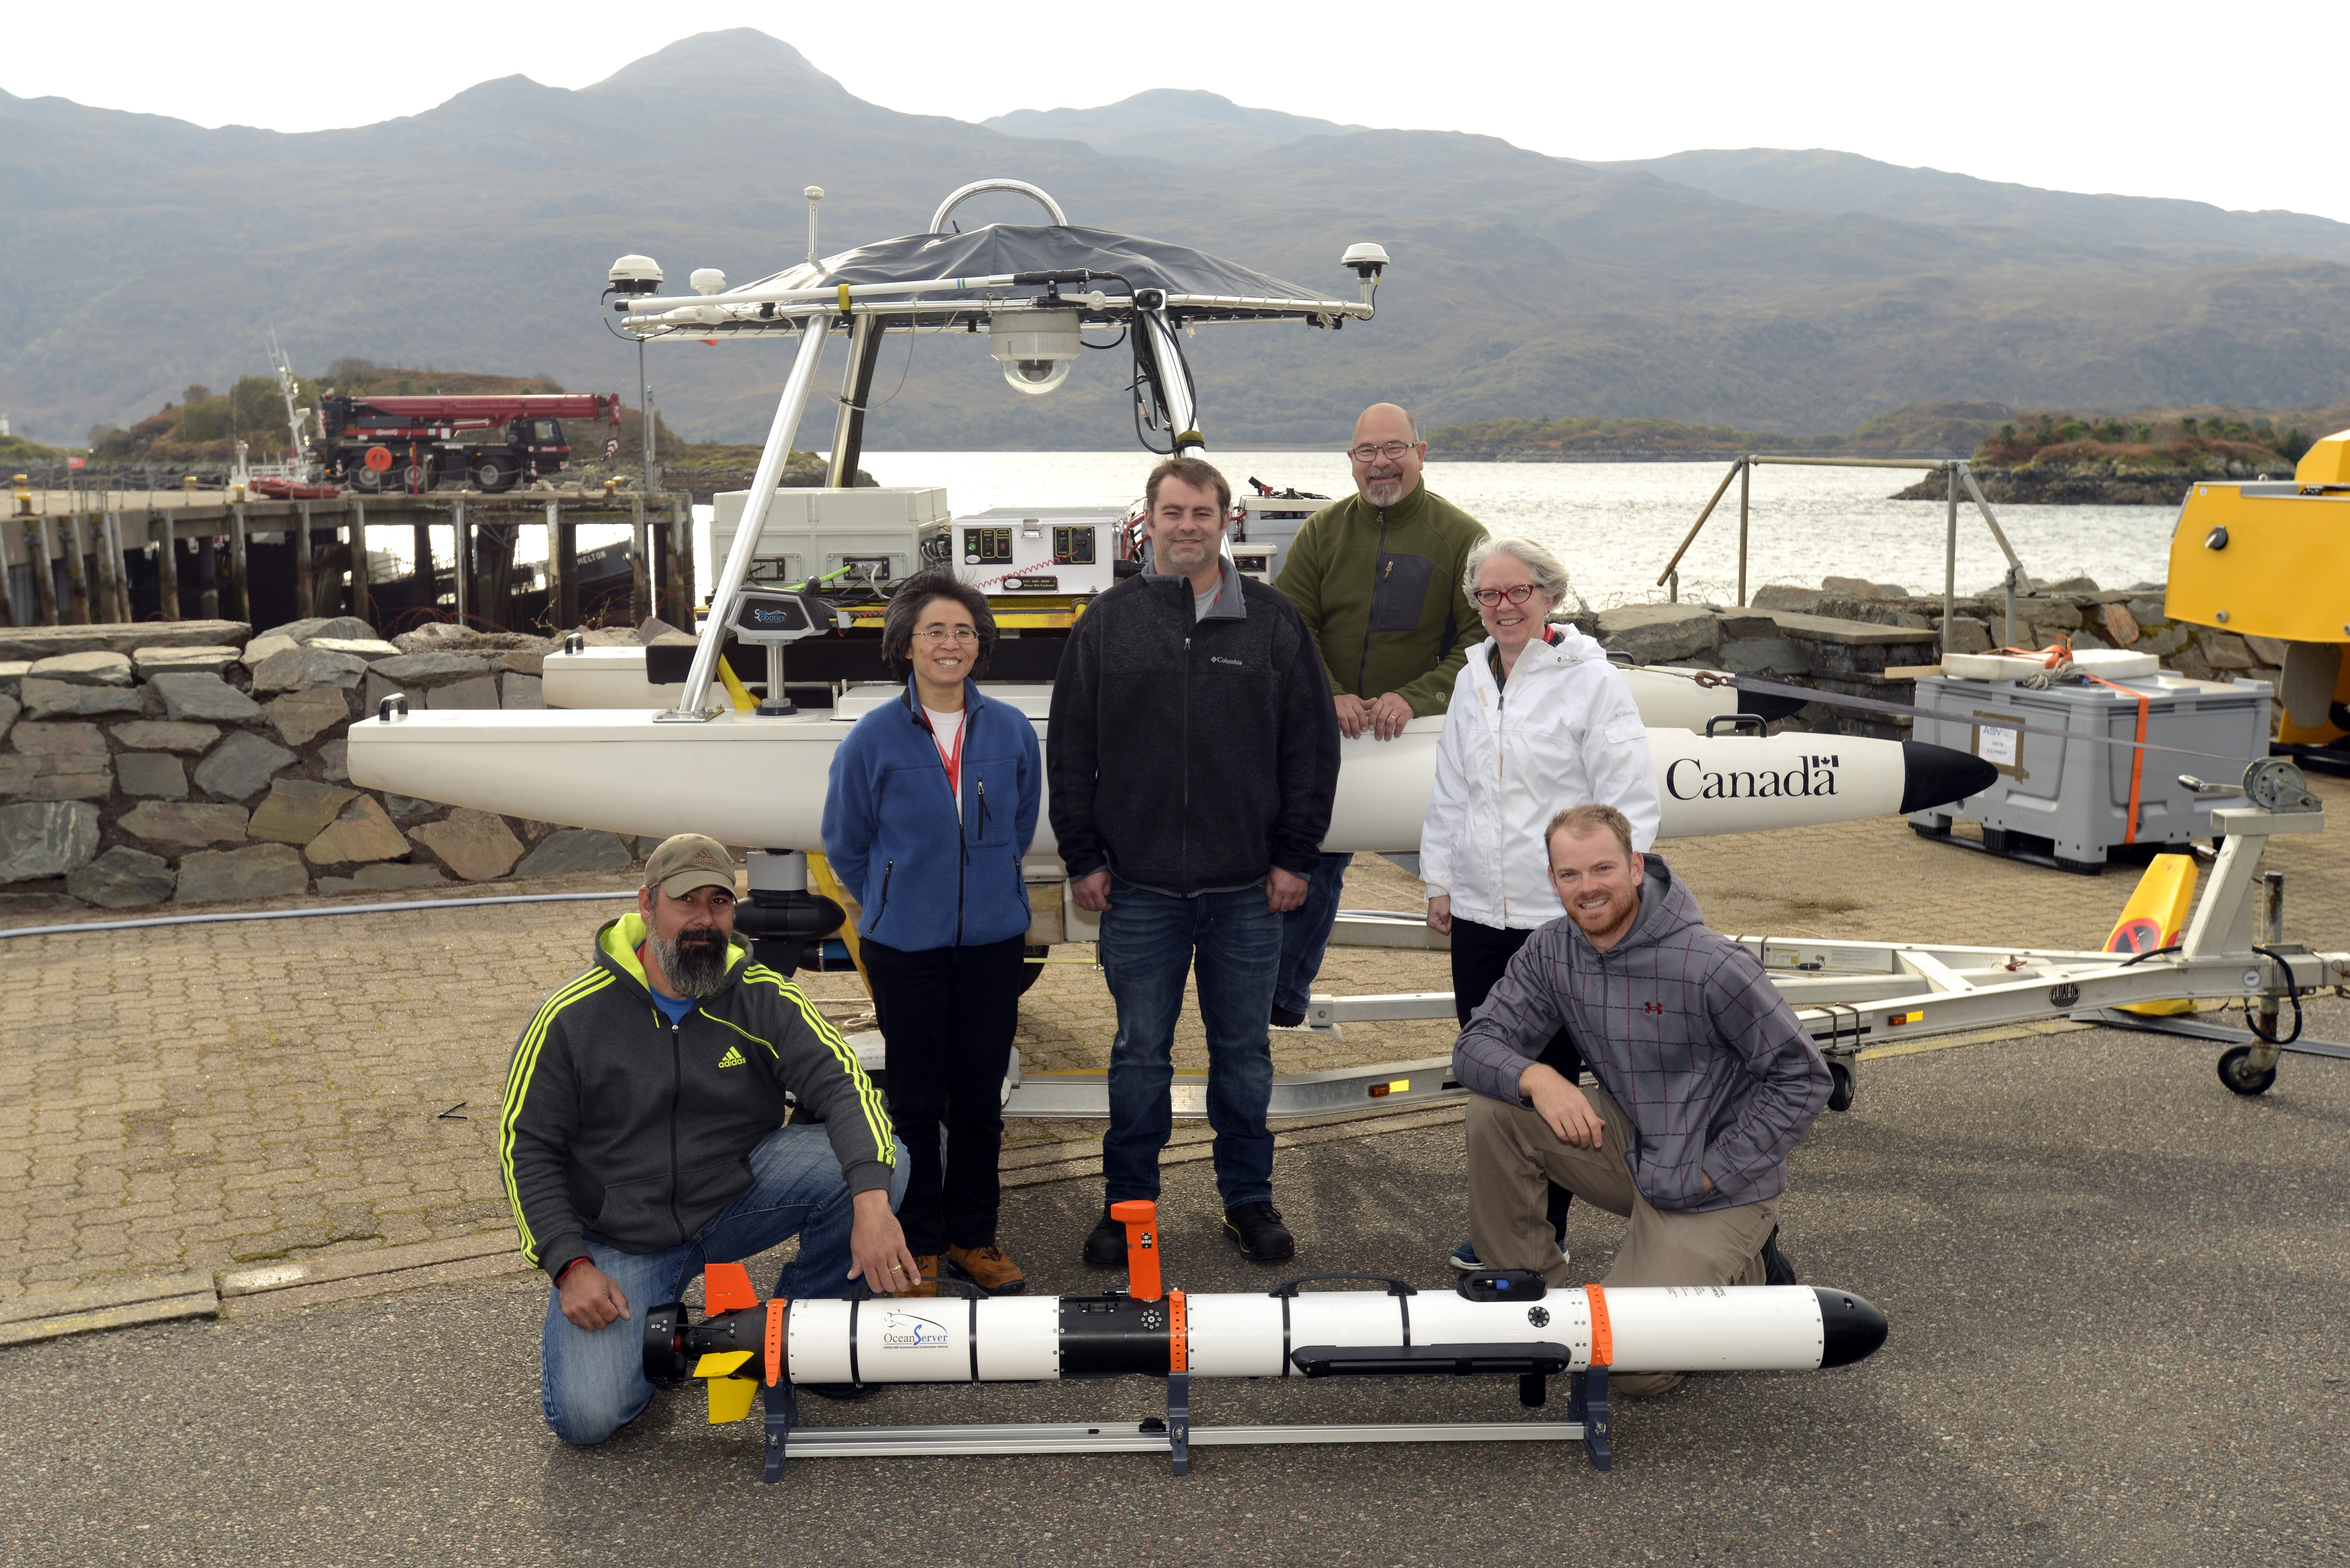 Defence Research and Development Canada's team for the Hell Bay portion of Ex UNMANNED WARRIOR 2016. Left to right: Tim Murphy, Dr. Mae Seto, Brett Pickrill, Al Tremblay, Elizabeth Blanchette, and Owen Shuttleworth.  John Fawcett and Anna Crawford also participated as members of the team, but are not pictured. Photo by Janice Lang, DRDC